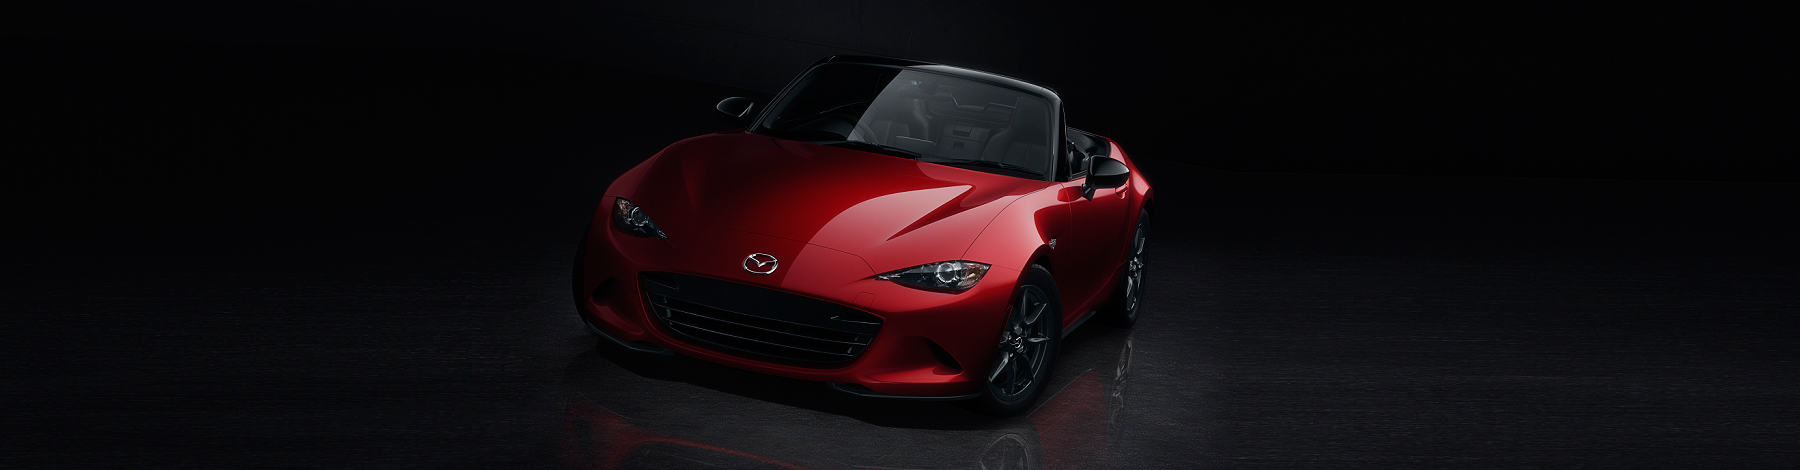 Red 2015 Mazda MX5 coming to London soon